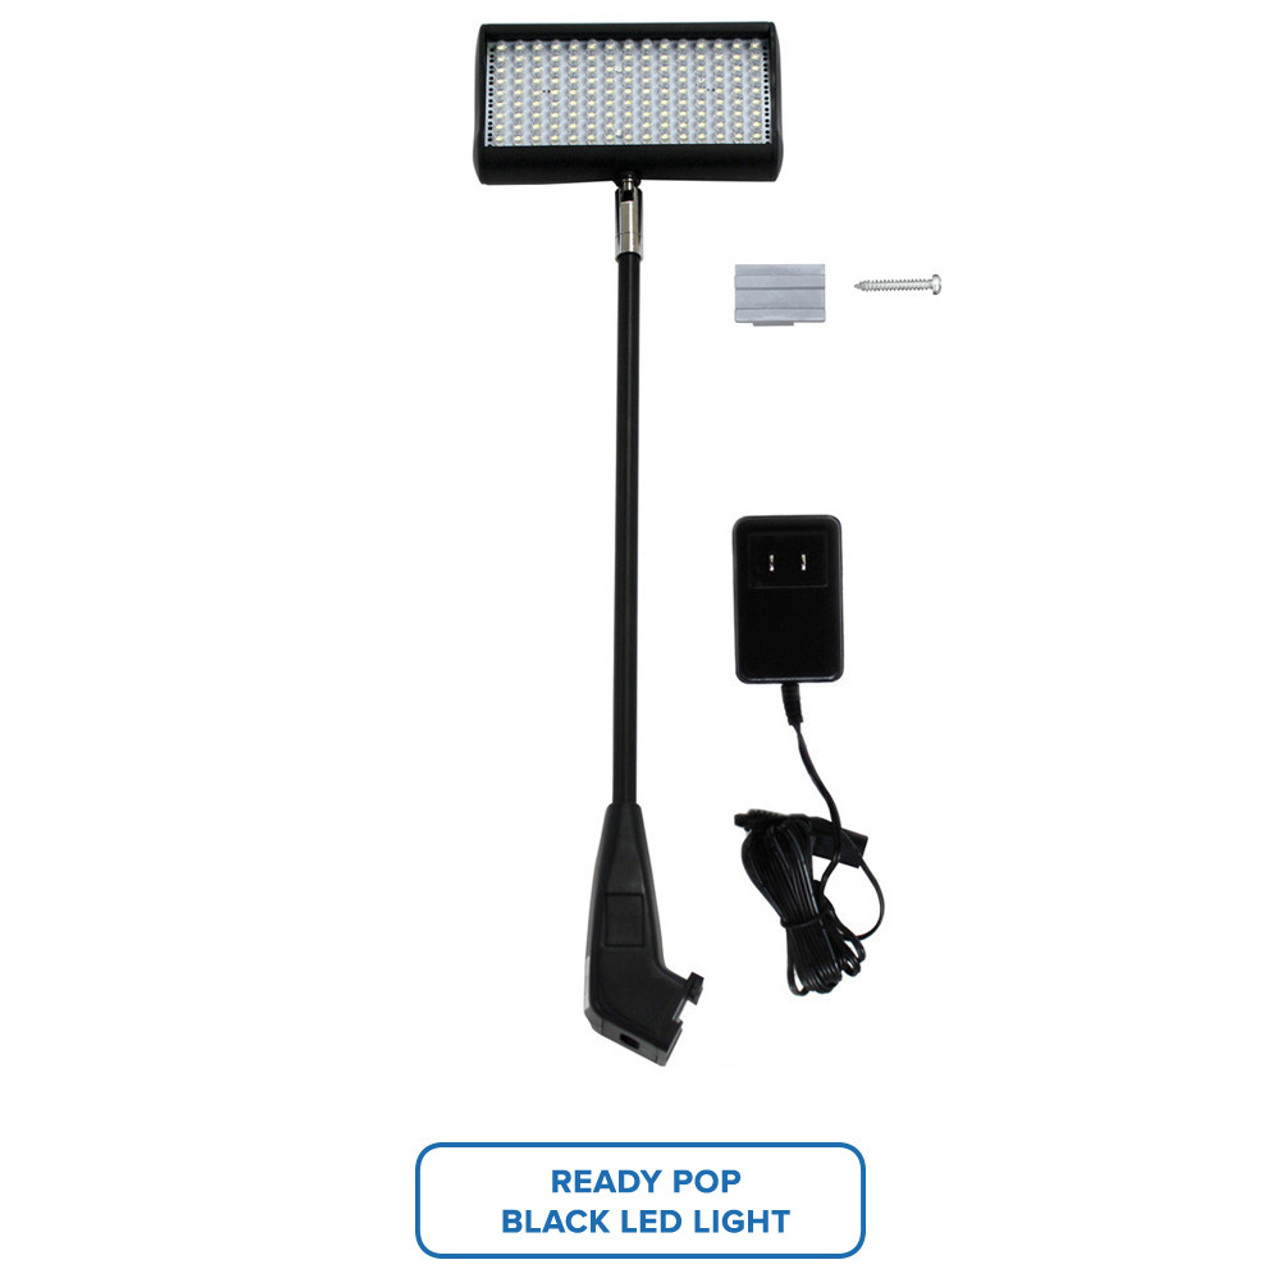 Black LED light RPL